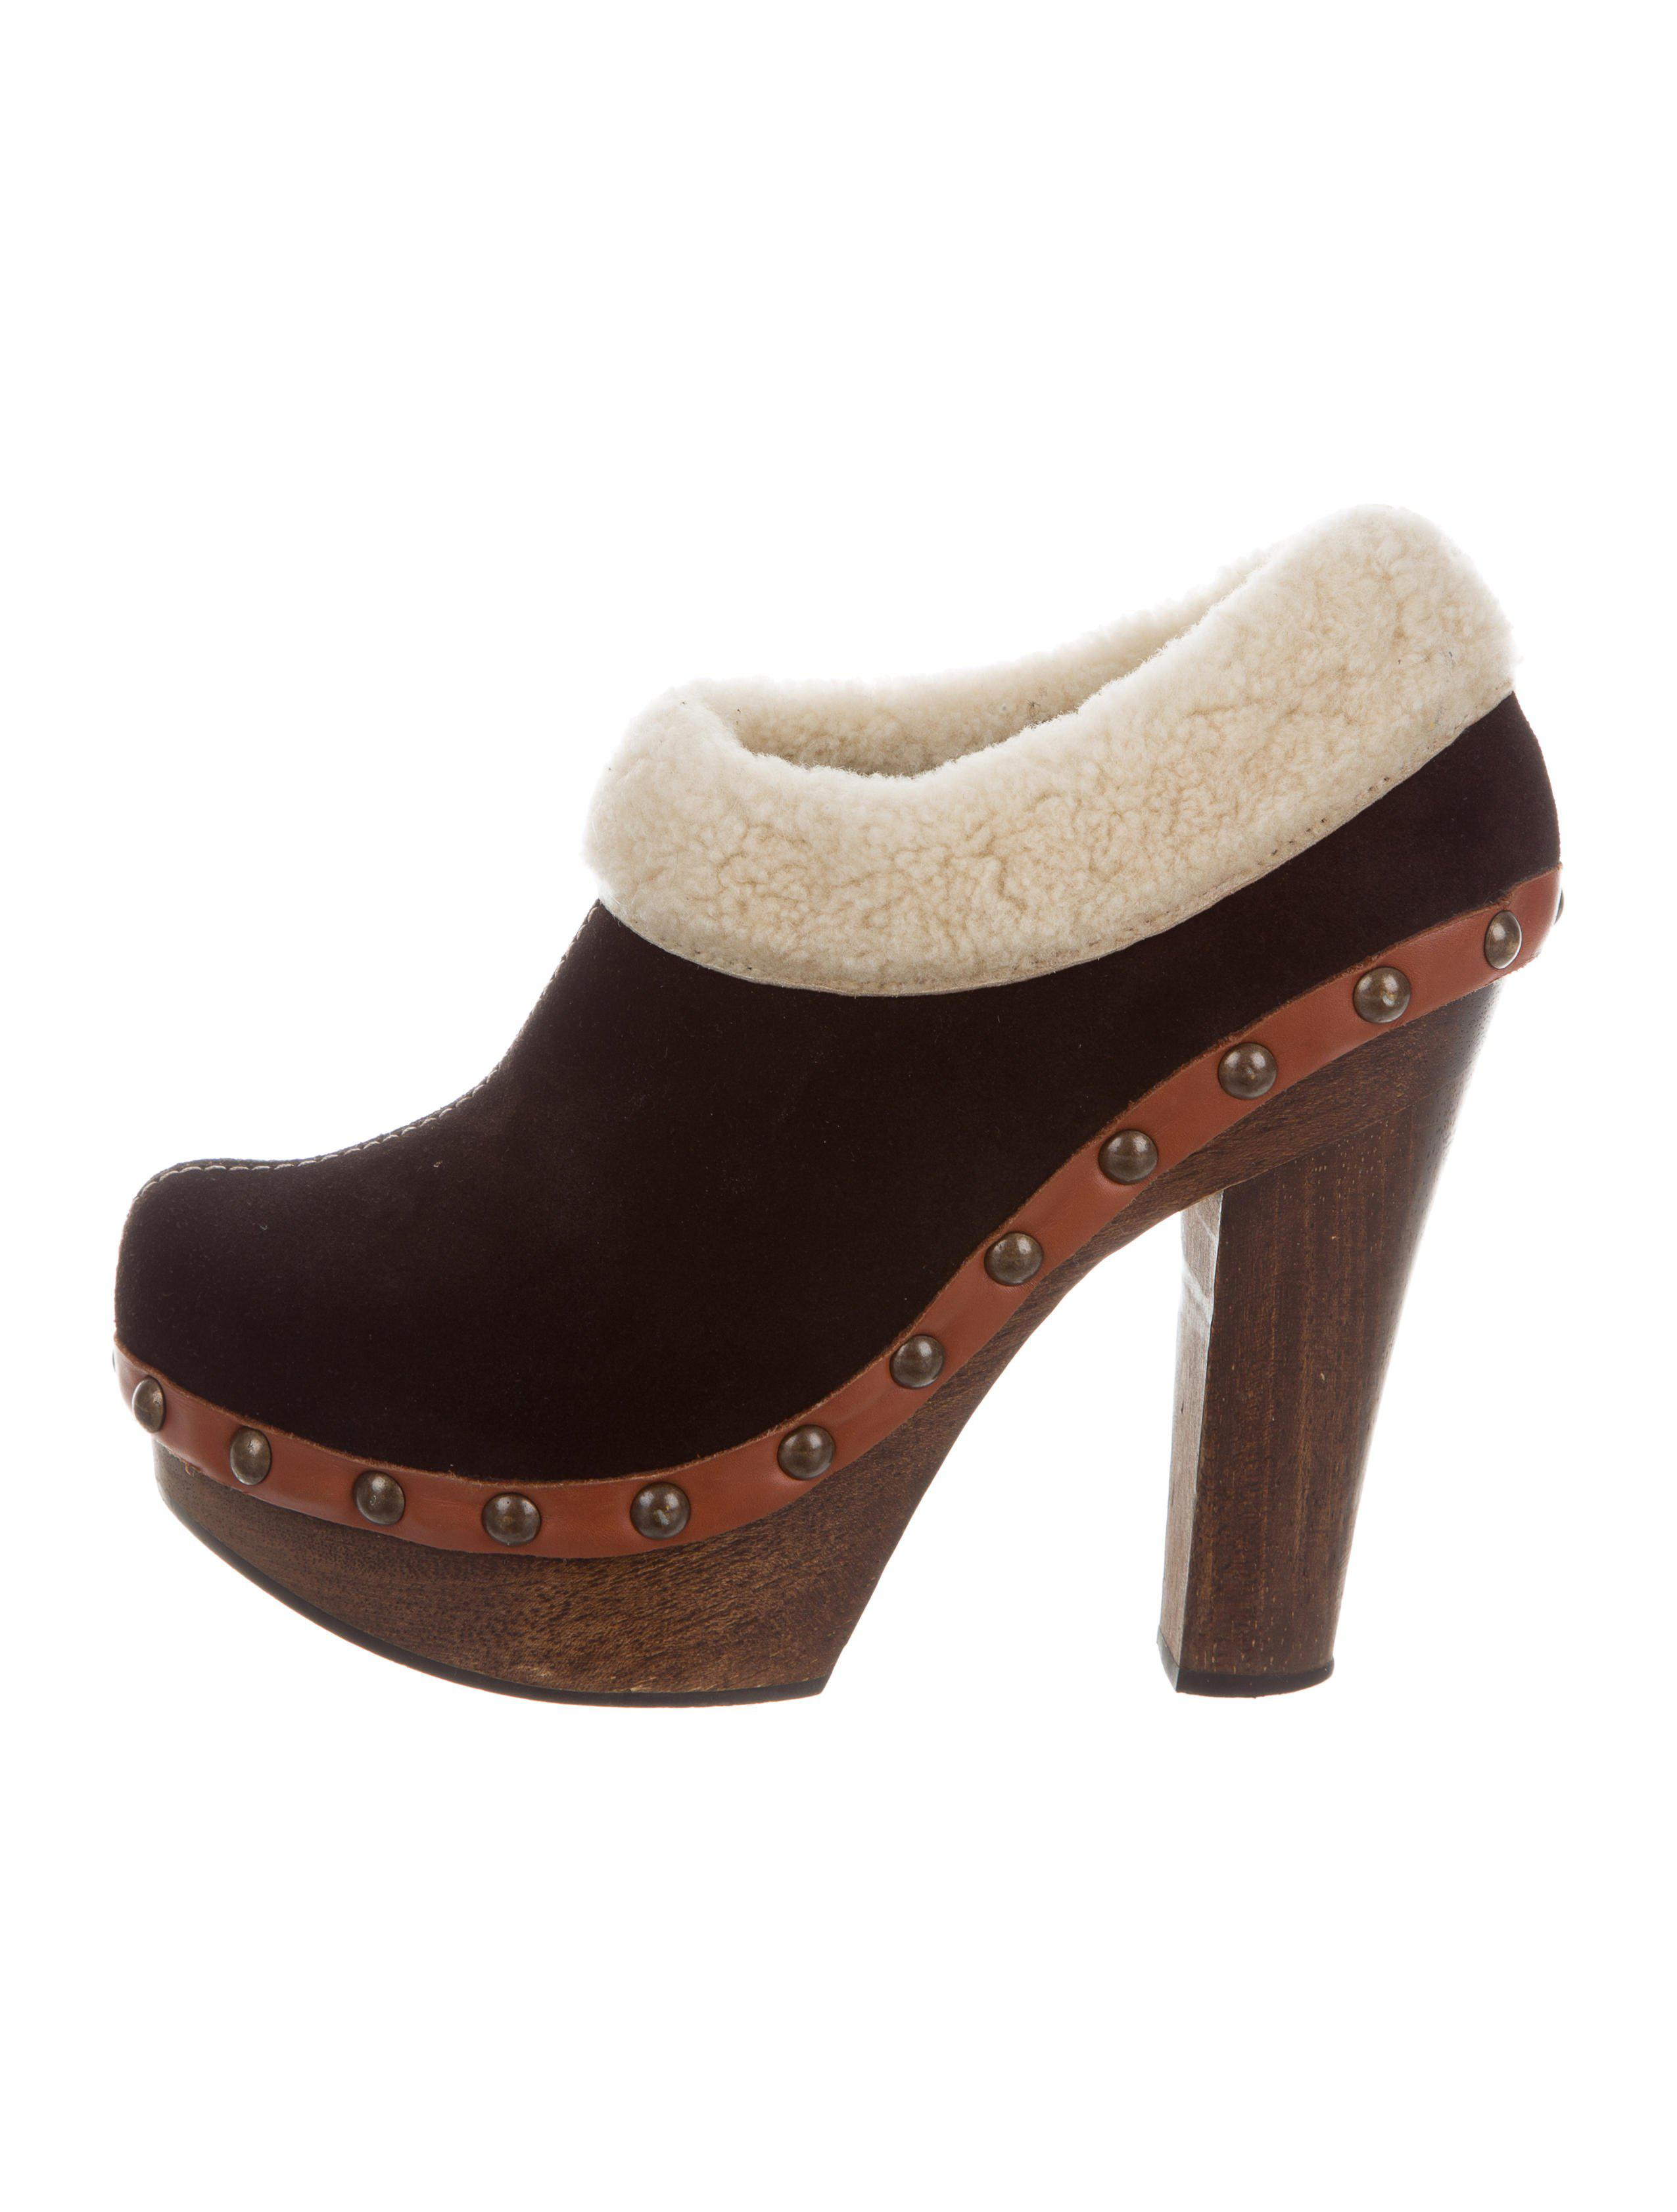 Miu Miu Shearling-Trimmed Platform Booties release dates For sale online with mastercard sale online buy cheap Inexpensive wp4QWv3